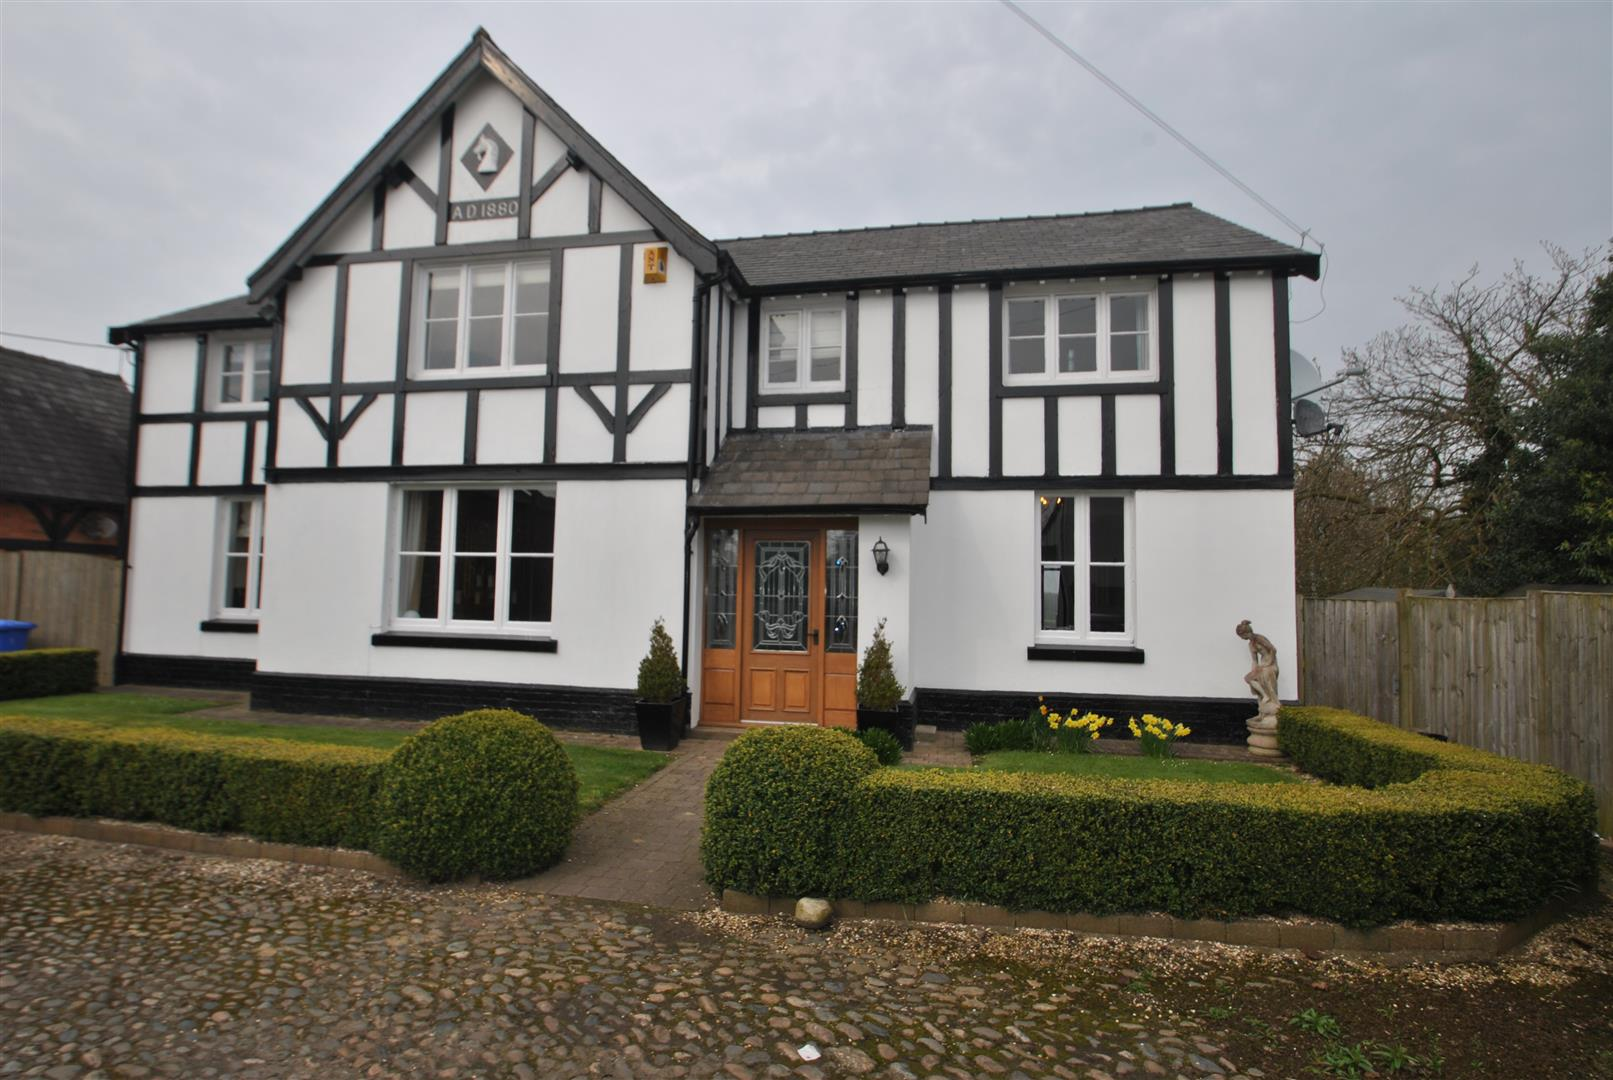 5 Bedrooms Detached House for sale in Cartridge Lane, GRAPPENHALL,, Warrington, WA4